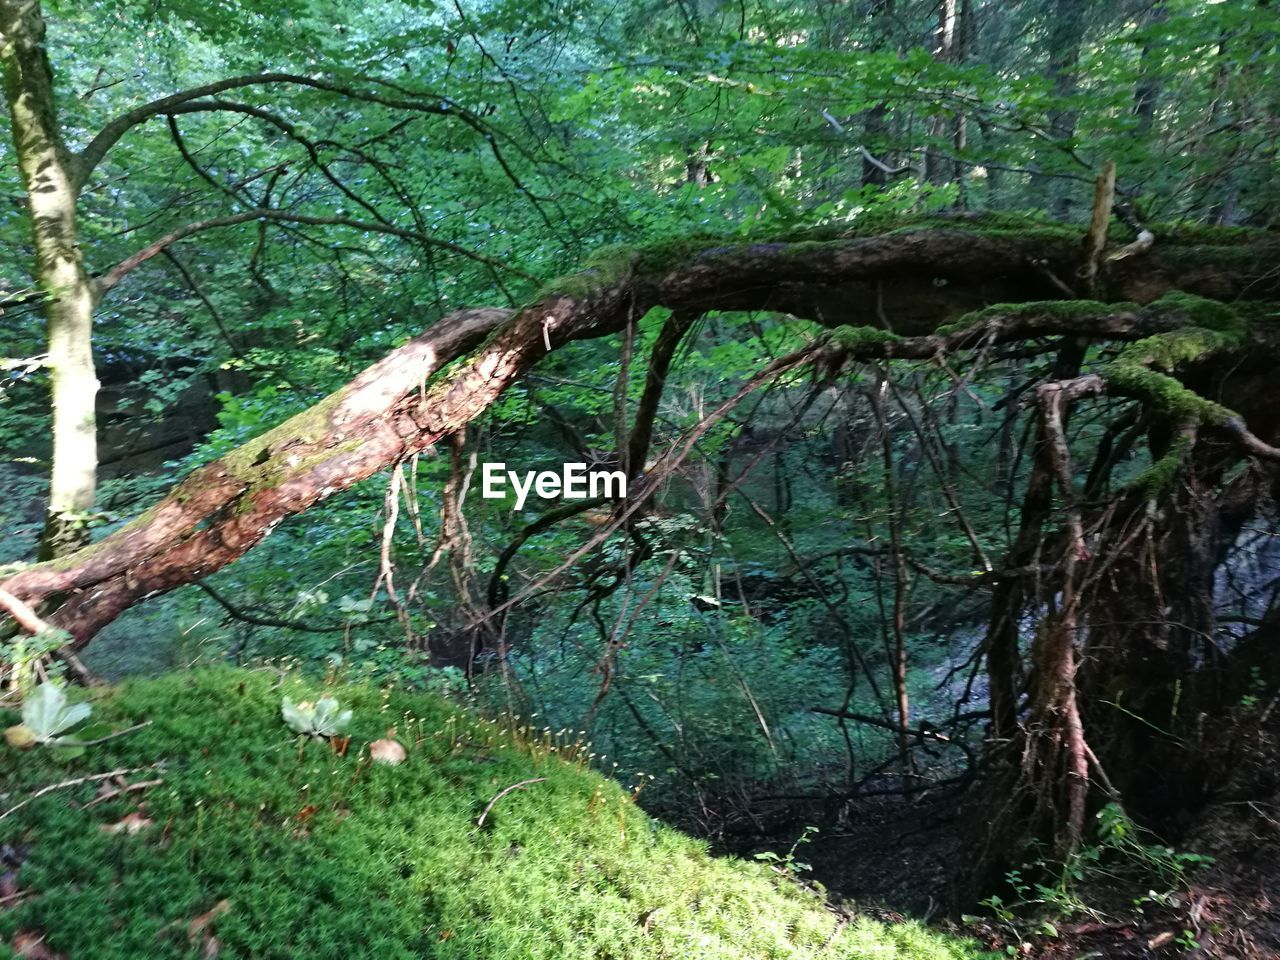 tree, forest, nature, branch, growth, tree trunk, green color, tranquility, beauty in nature, no people, outdoors, day, moss, dead tree